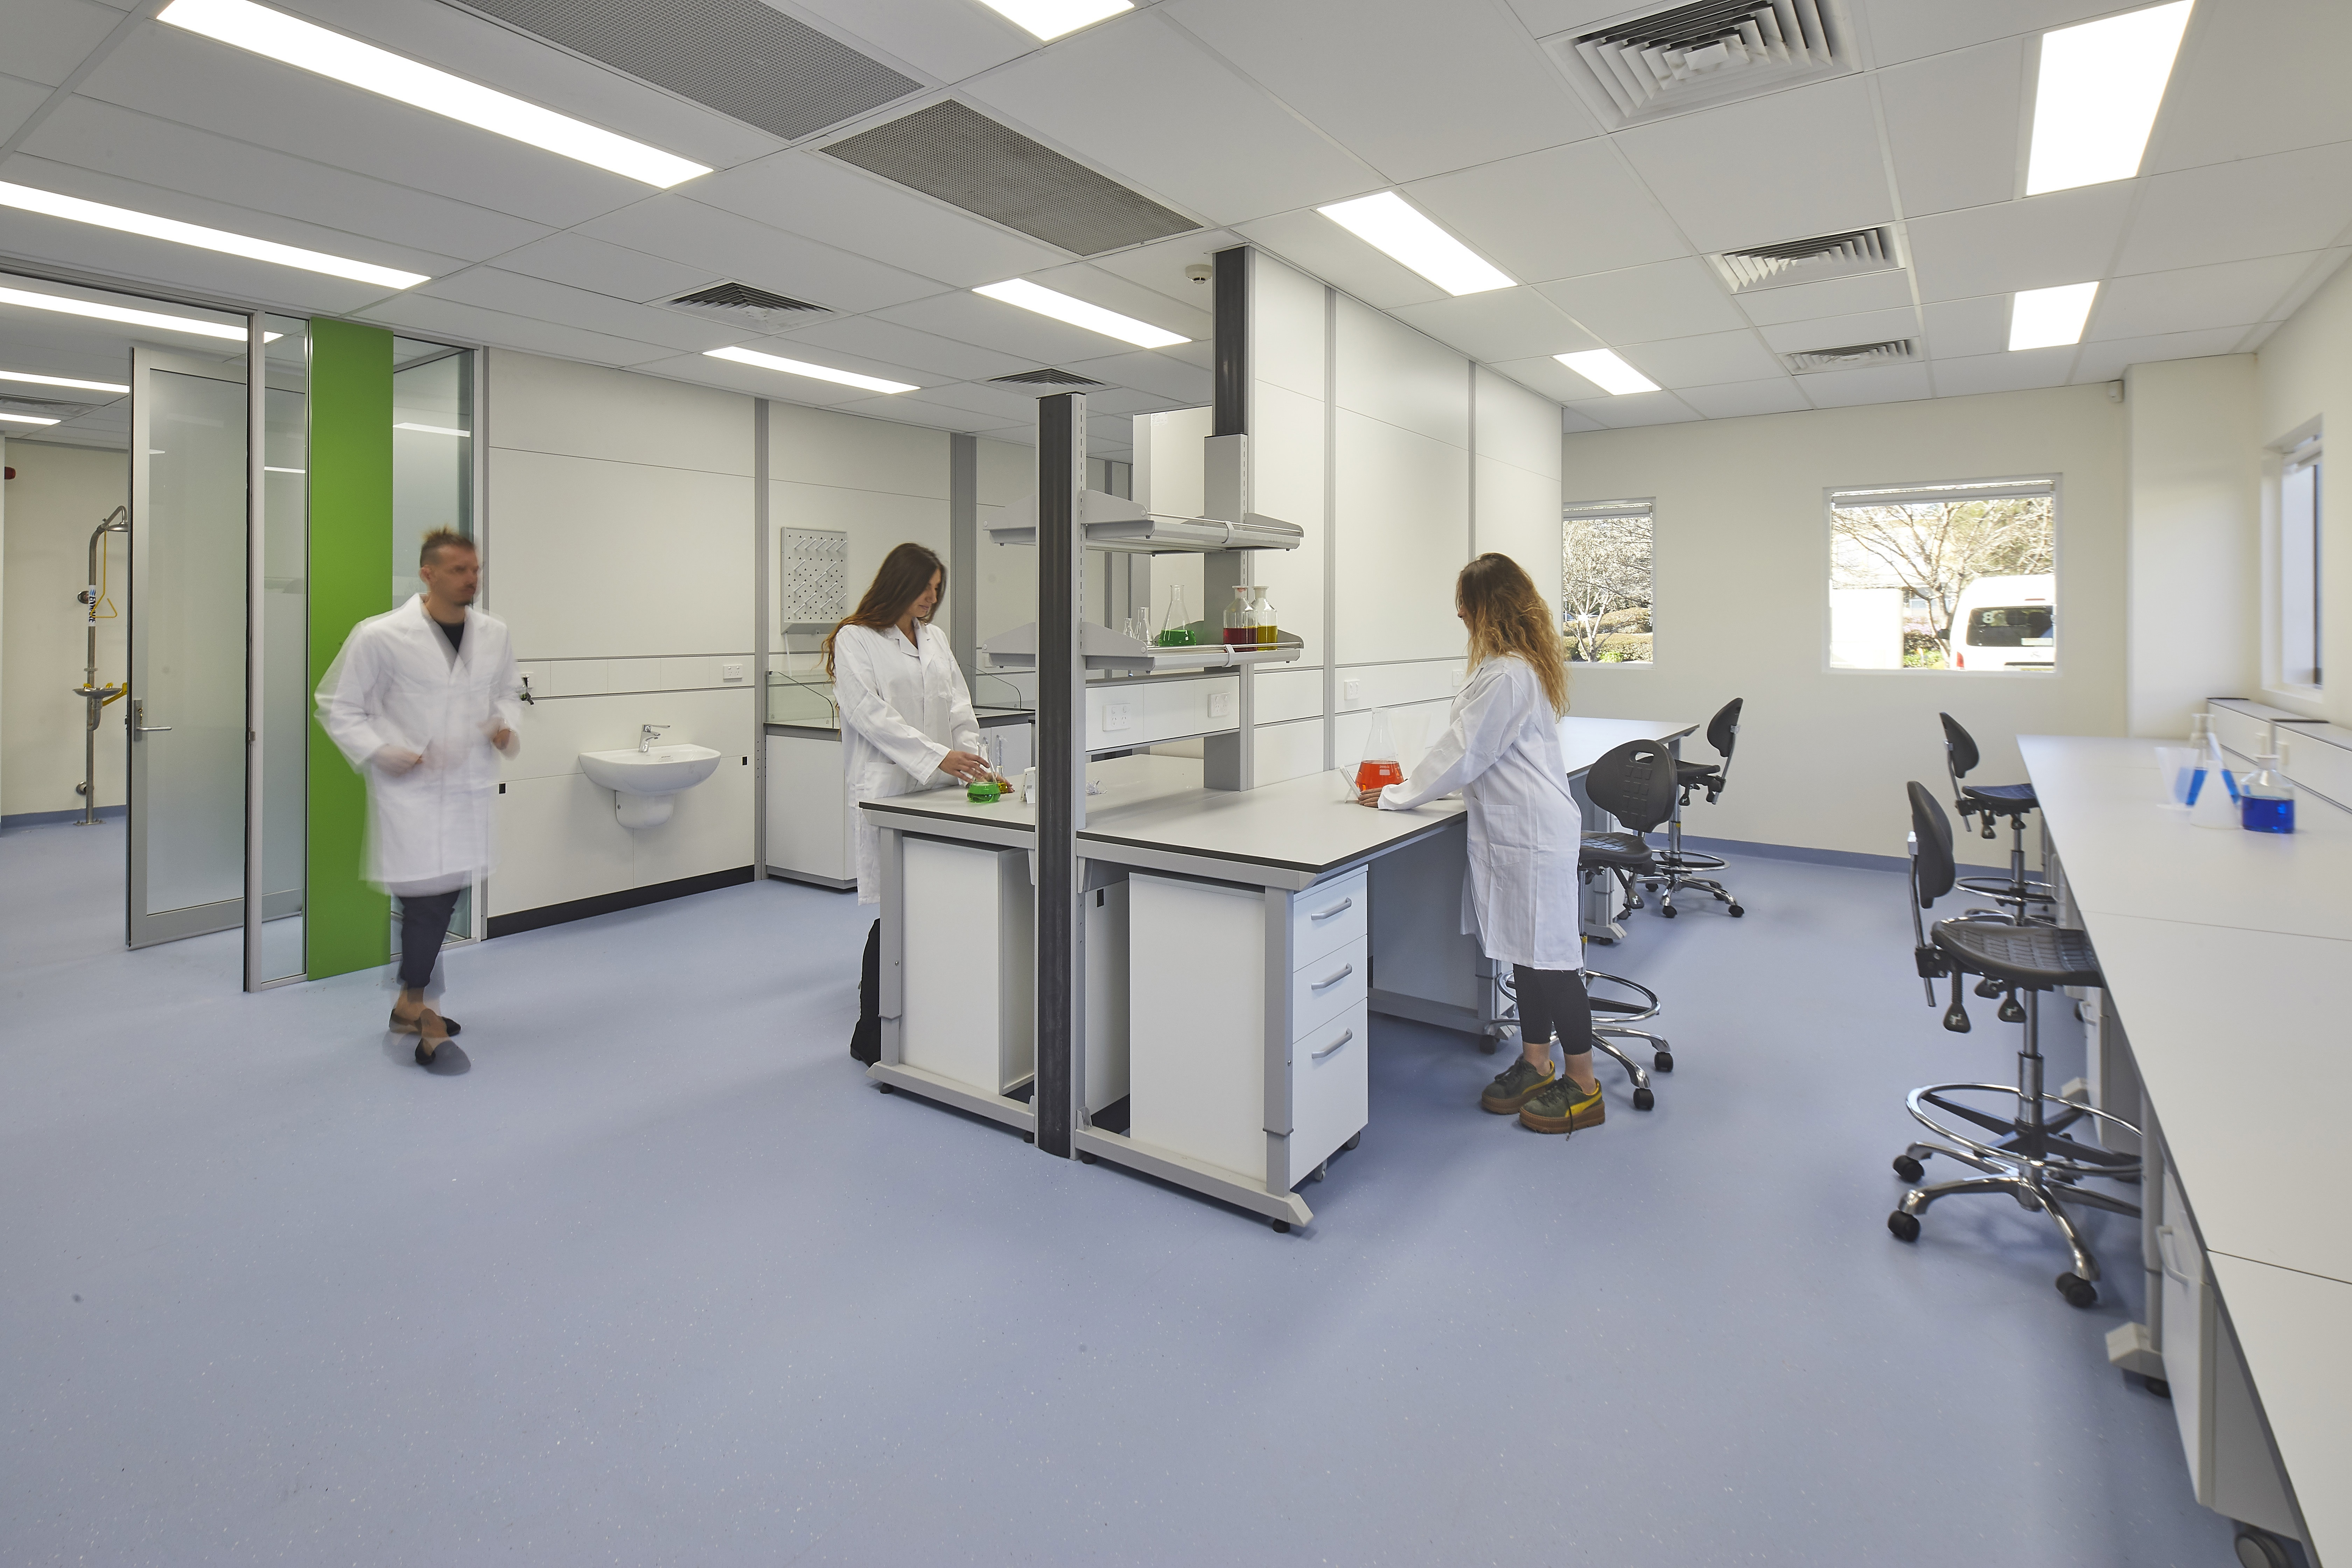 Yild STEMM Laboratory and technical spaces